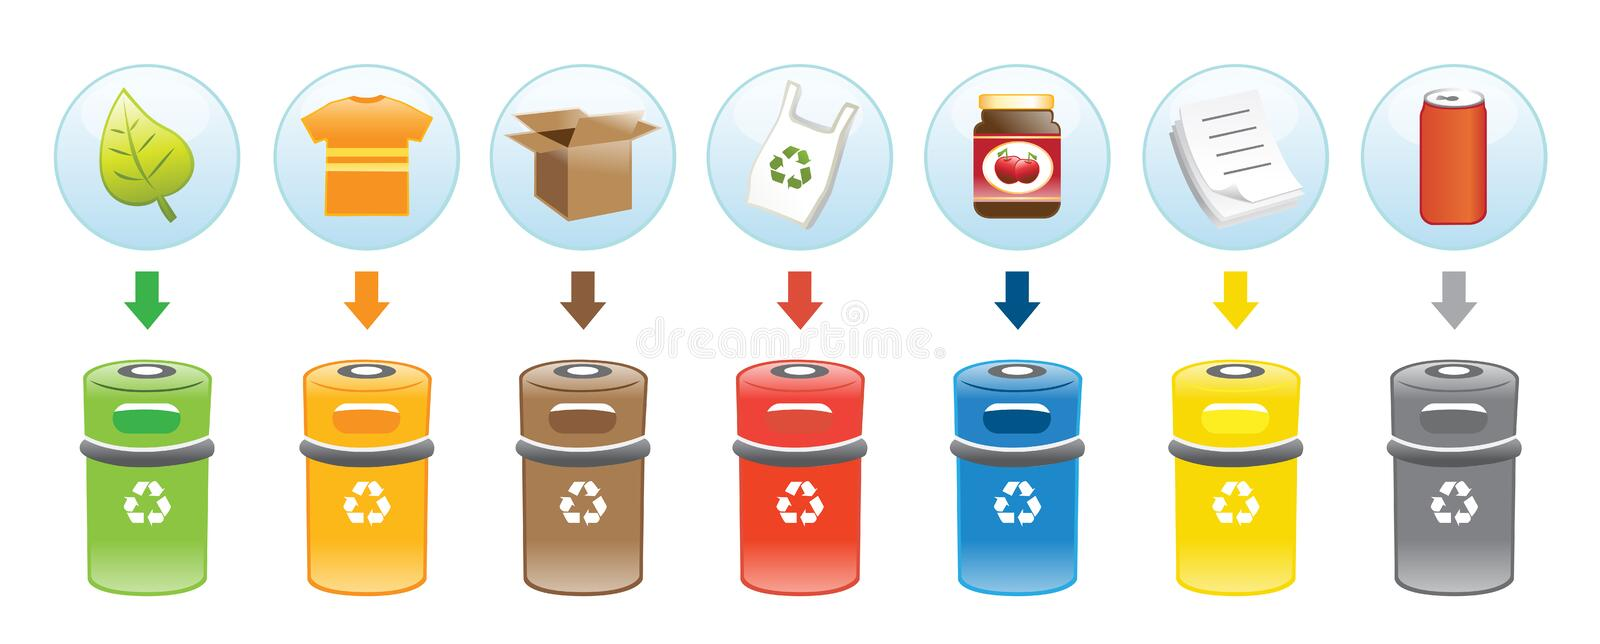 Recycling Bins. Vector illustration showing various bins for different garbage stock illustration